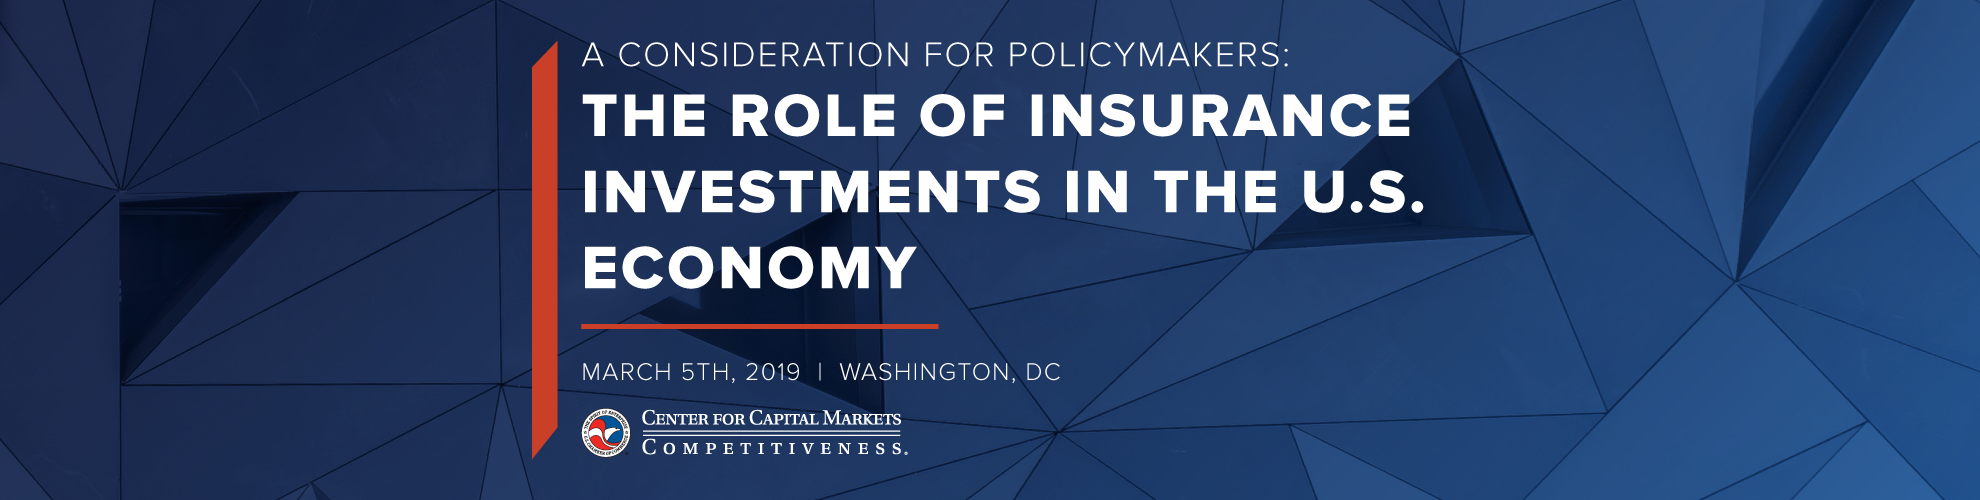 A Consideration for Policymakers: The Role of Insurance Investments in the U.S. Economy